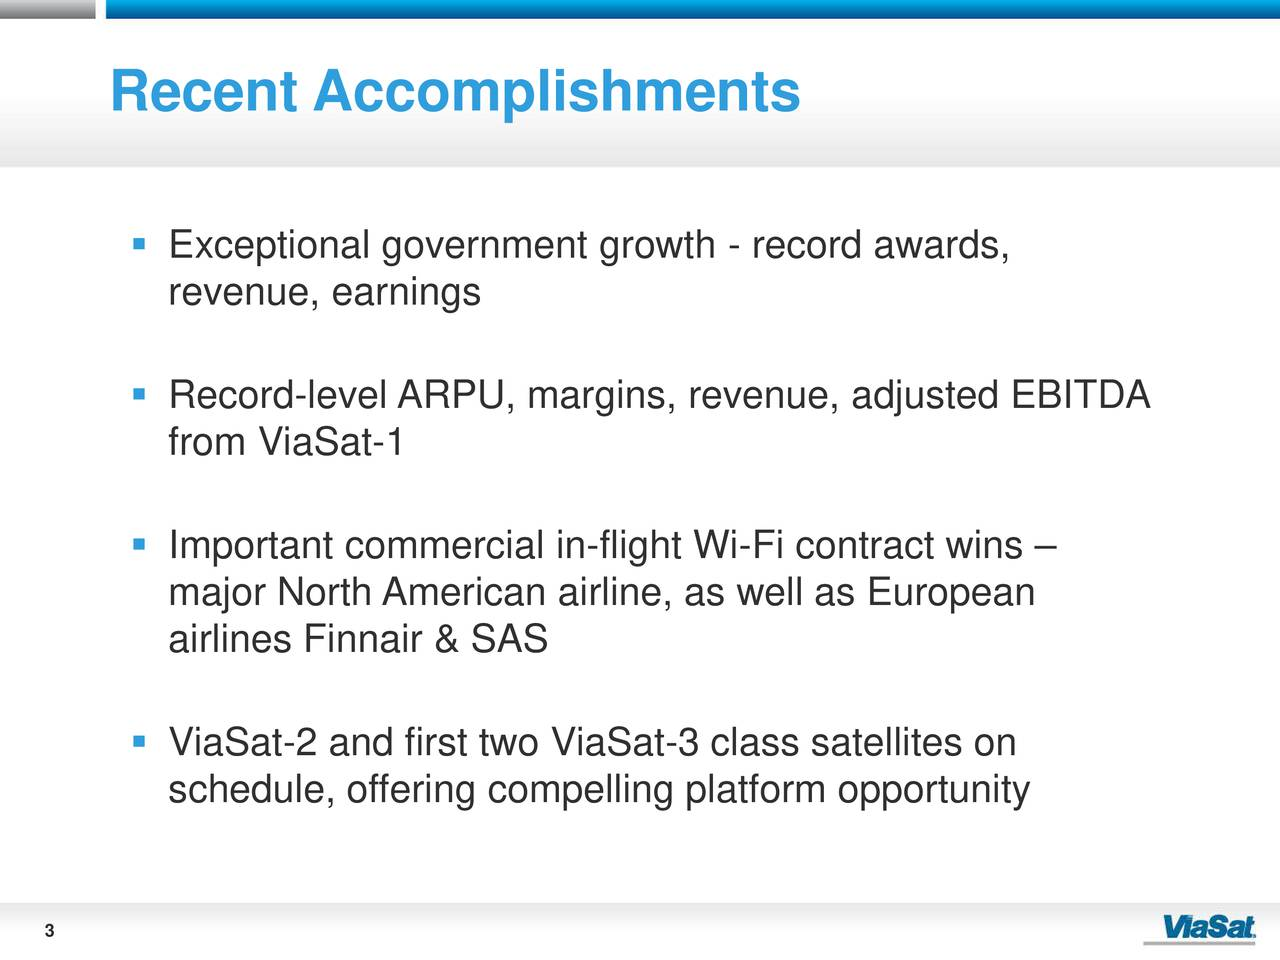 Exceptional government growth - record awards, revenue, earnings Record-level ARPU, margins, revenue, adjusted EBITDA from ViaSat-1 Important commercial in-flight Wi-Fi contract wins major North American airline, as well as European airlines Finnair & SAS ViaSat-2 and first two ViaSat-3 class satellites on schedule, offering compelling platform opportunity 3